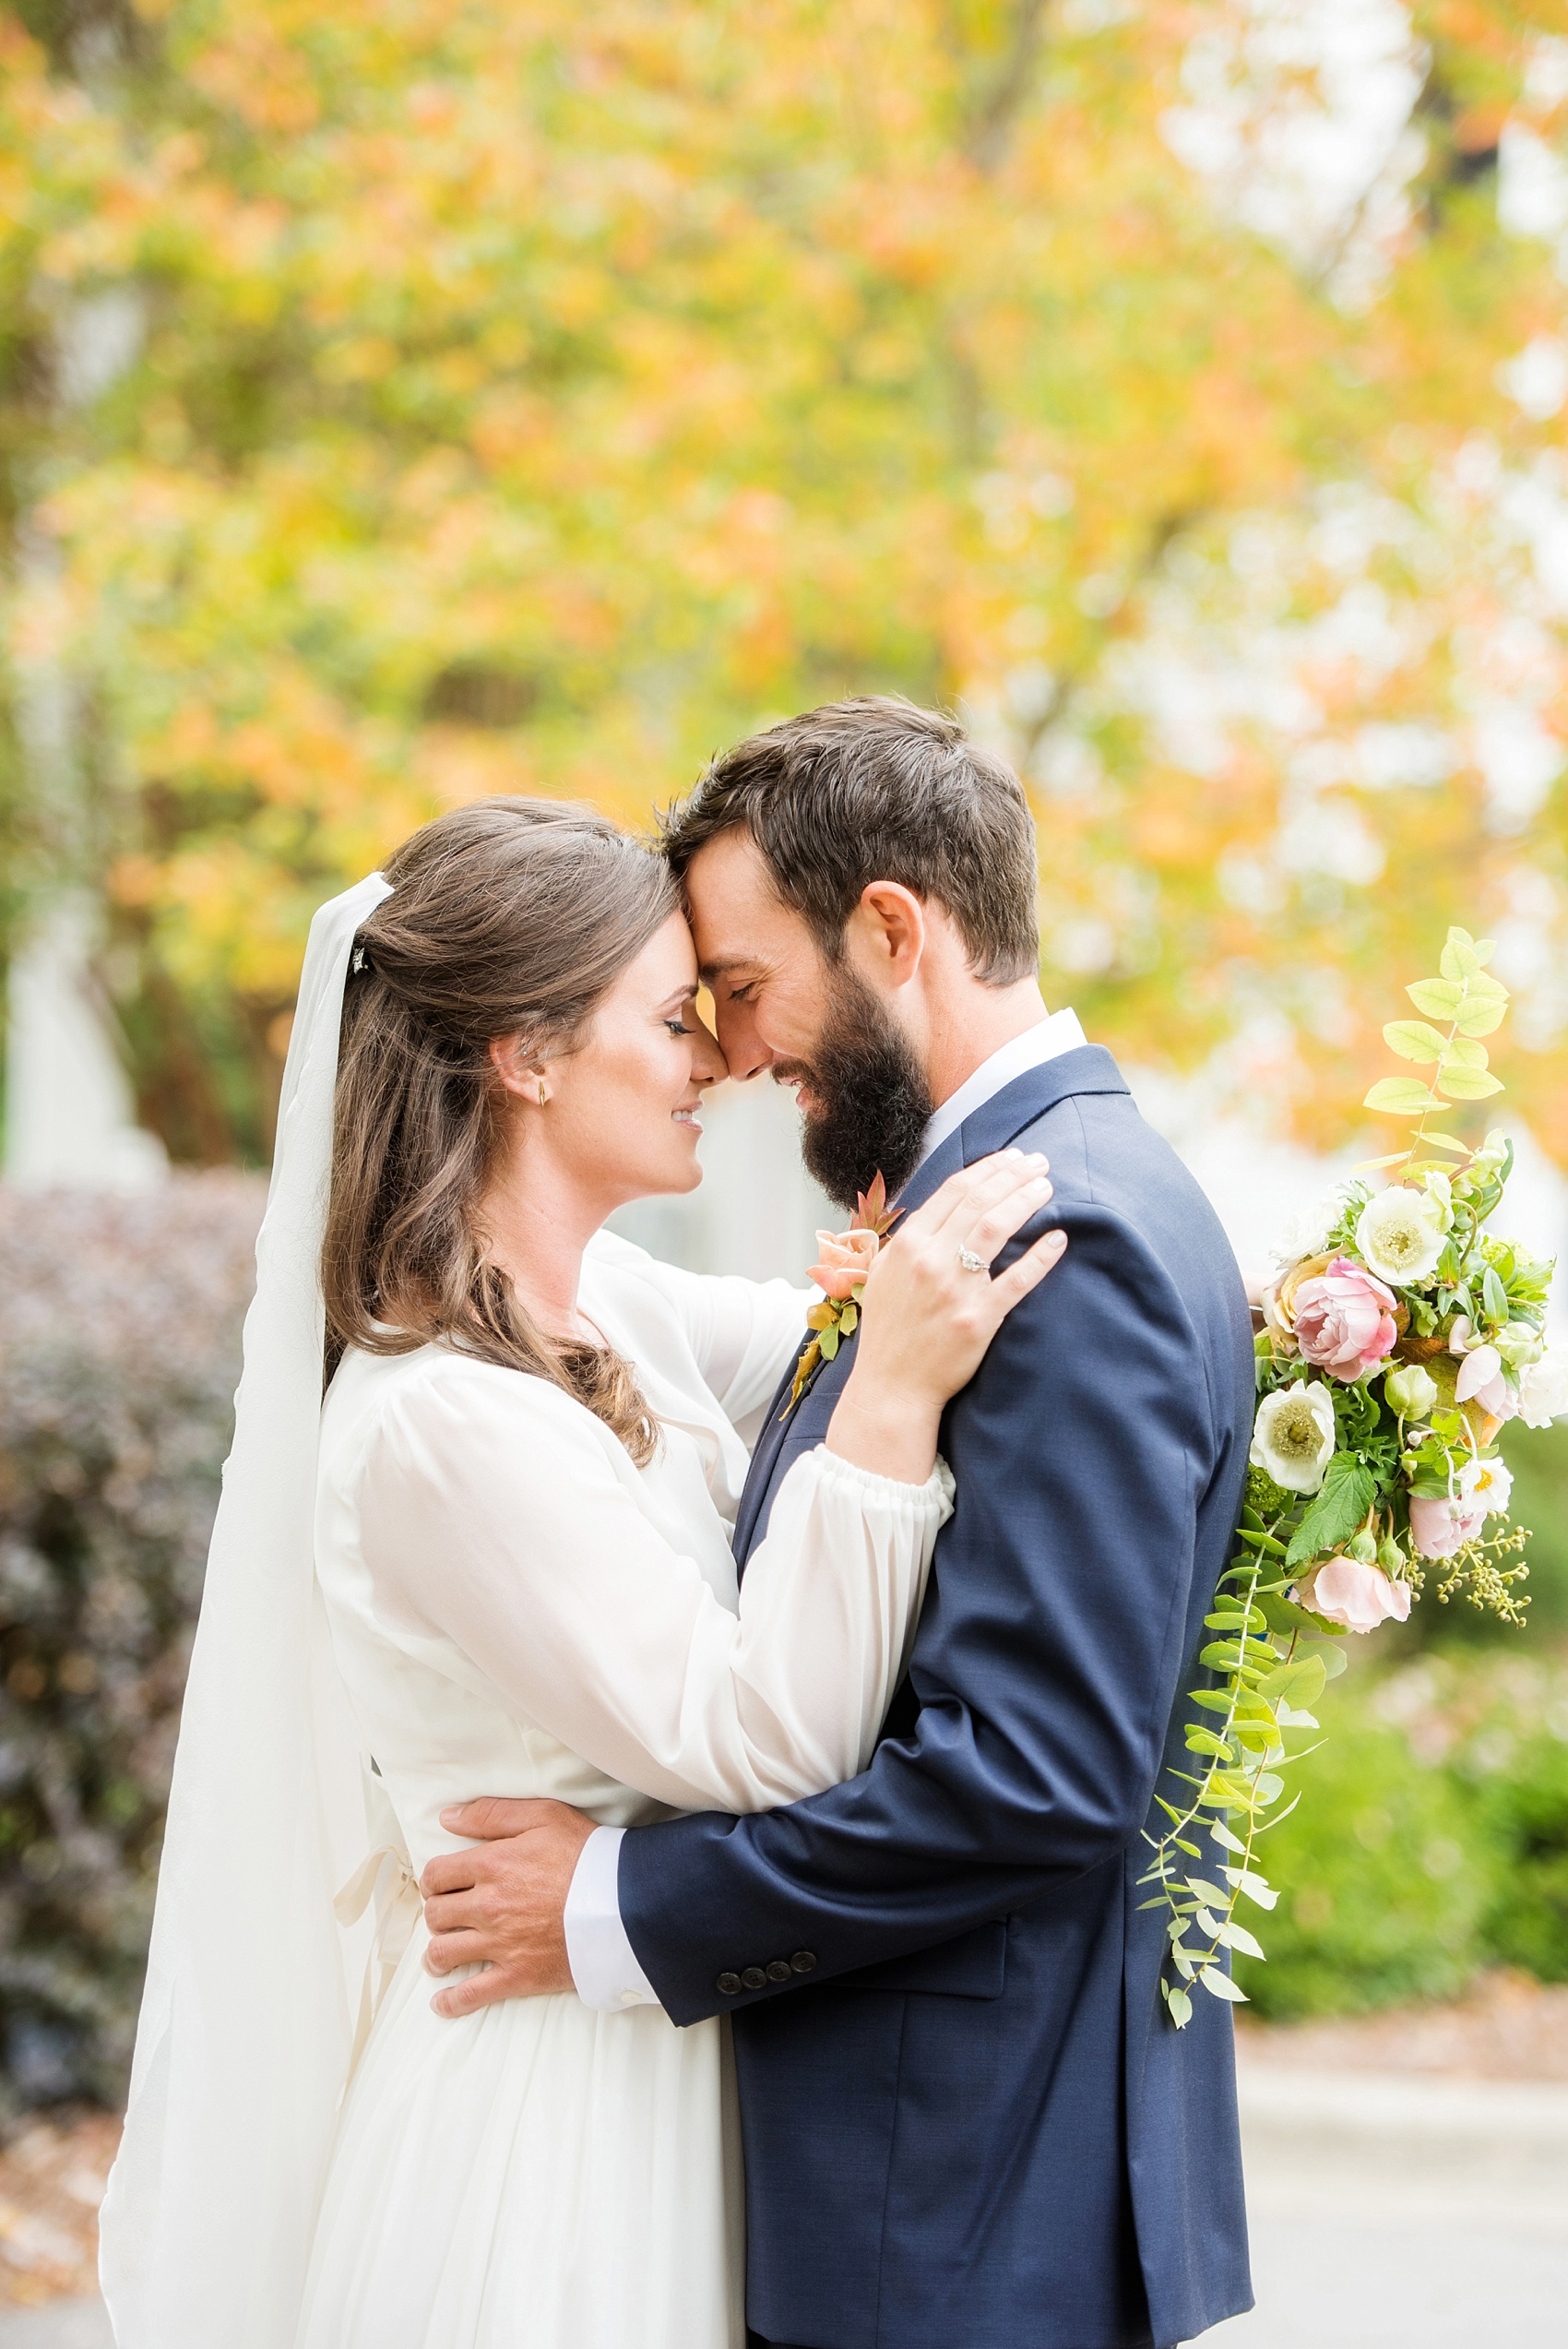 Mikkel Paige Photography photos from a wedding at Leslie-Alford Mims House in North Carolina. Picture of the Boho bride and groom in a navy suit for their Mad Dash Wedding, complete with colorful fall foliage.